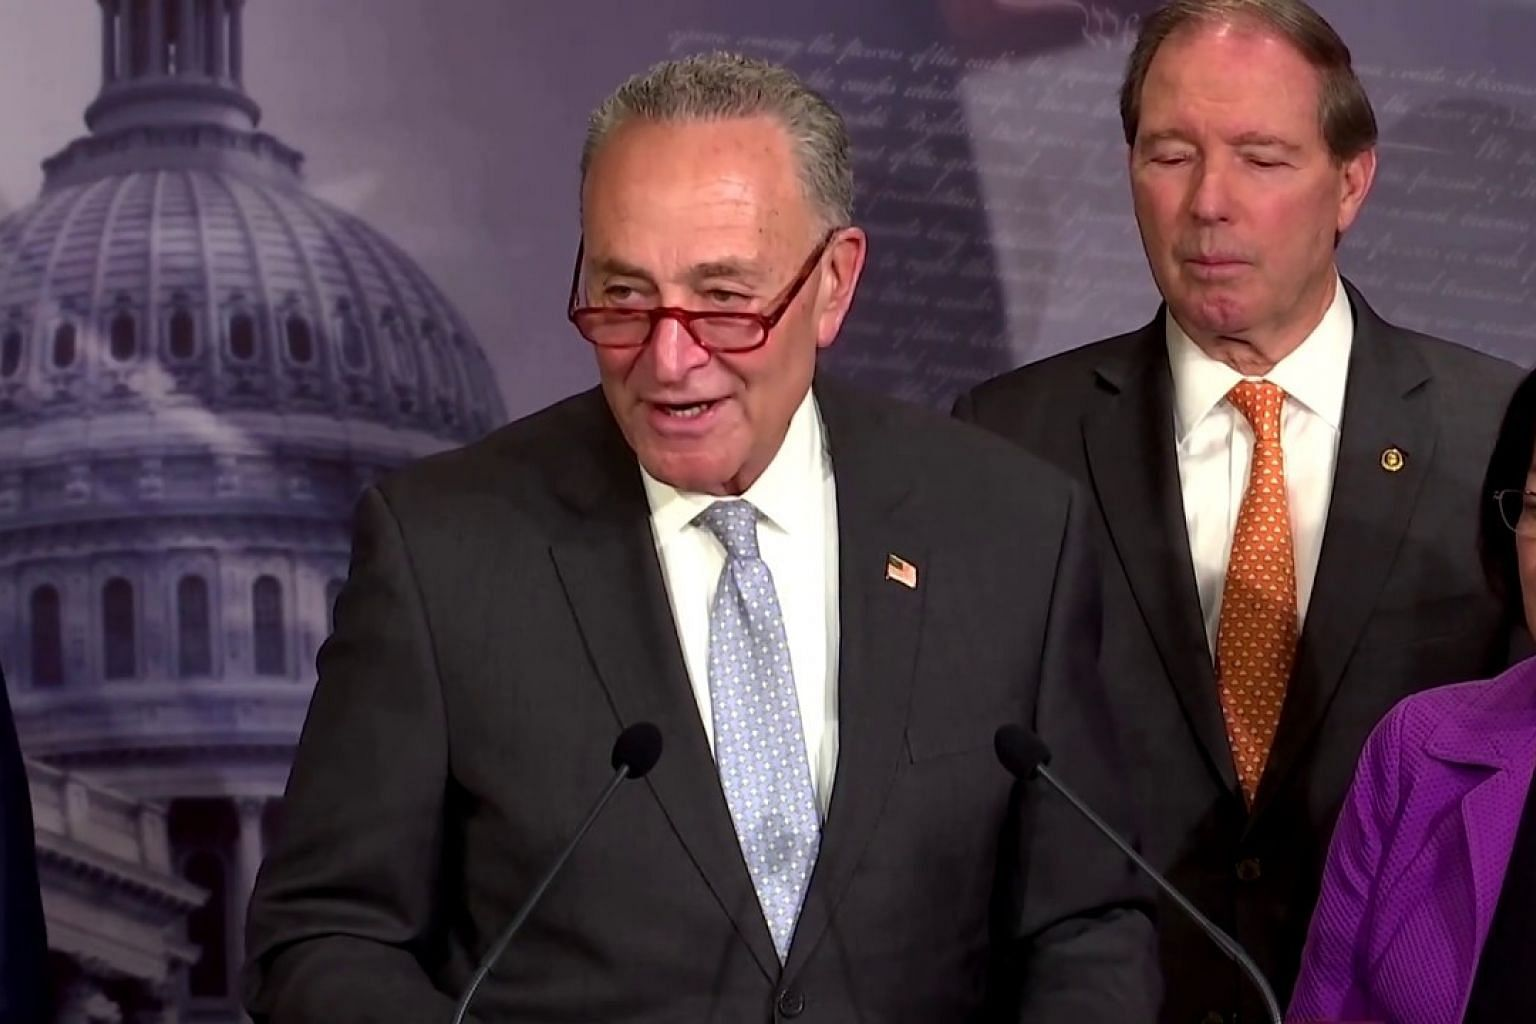 GOP 'nothing new' argument 'rings hollow': Schumer